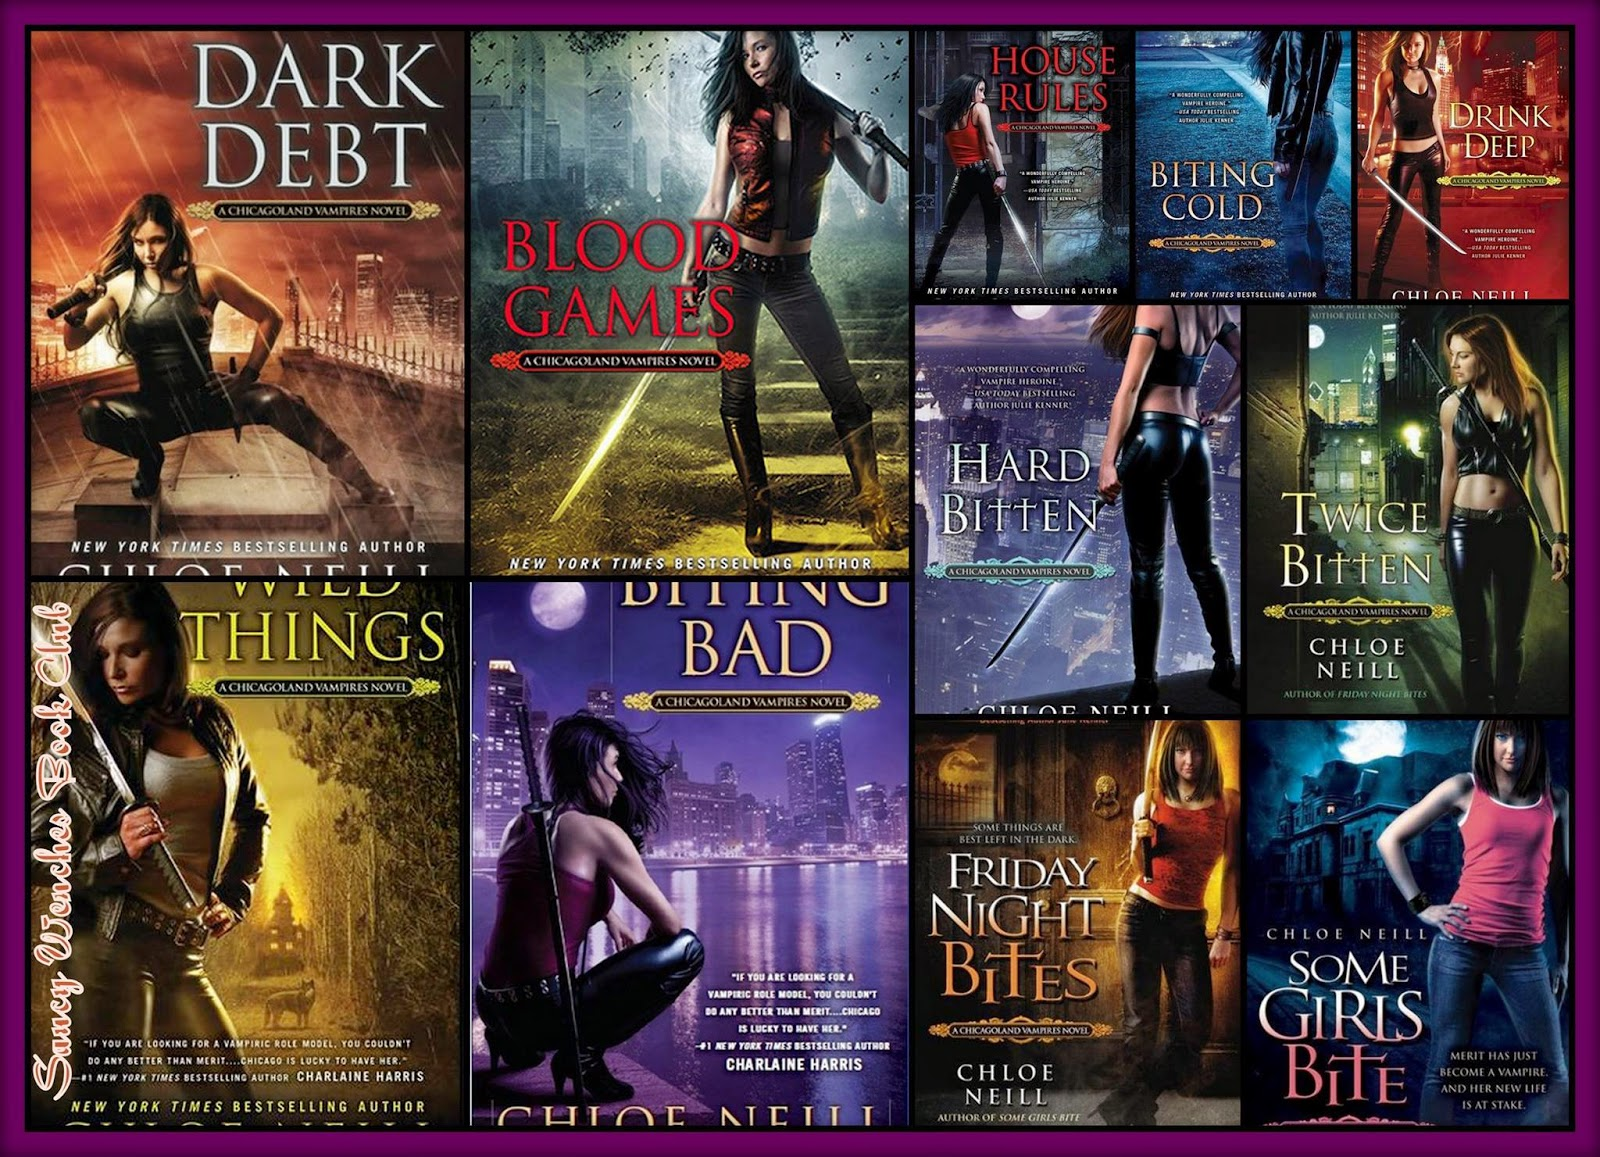 It's No Secret That Many Of Us Adore Chloe Neill's Chicagoland Vampires  Series Since We've Talked About It Early And Often As Long As We've Been A  Blog